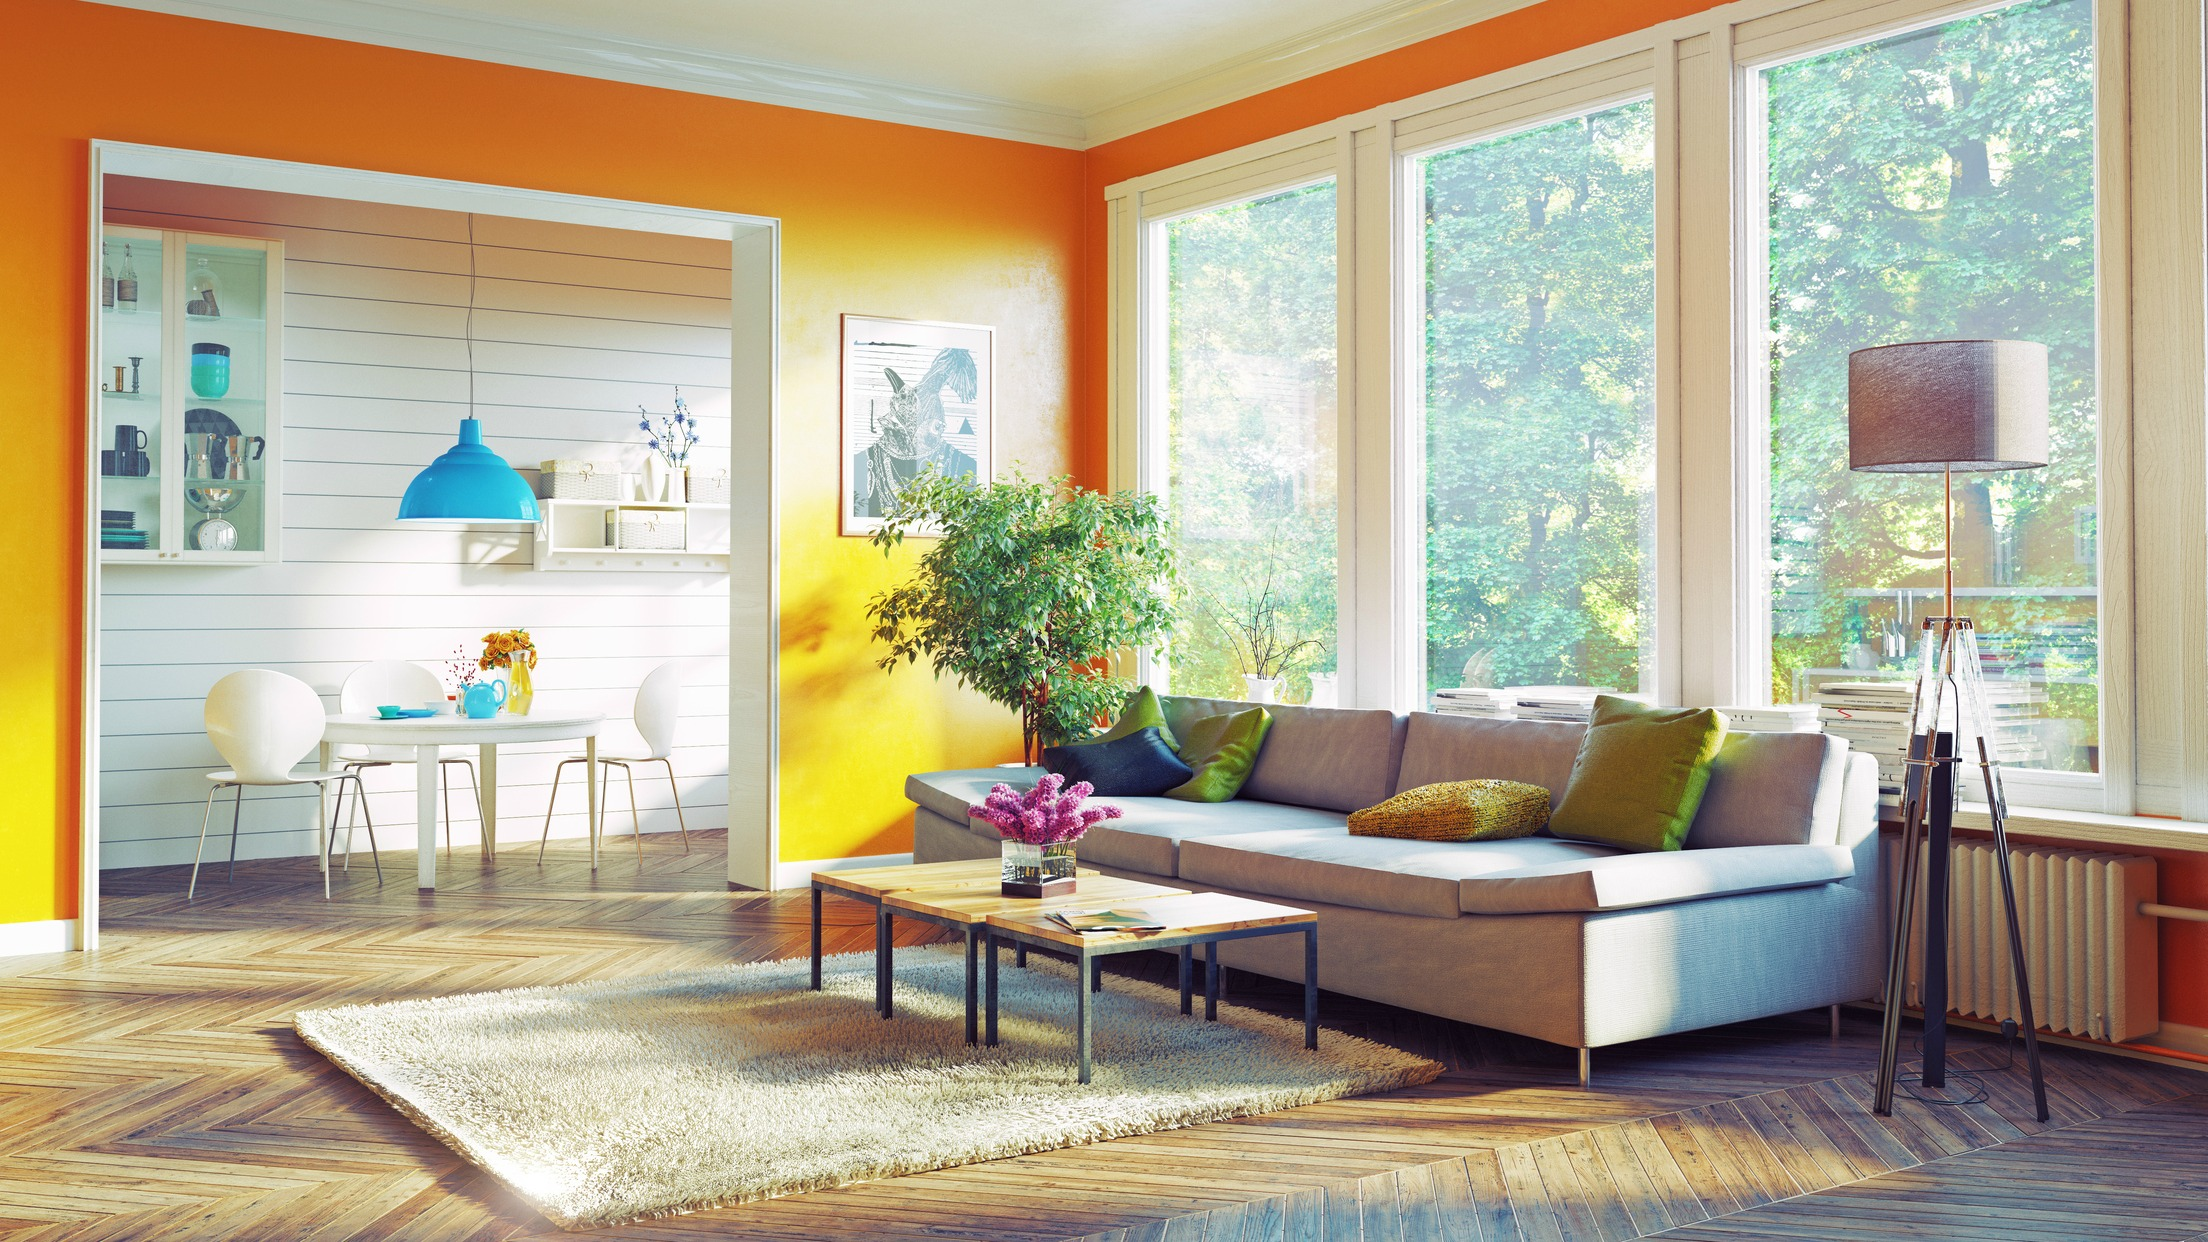 Sell Your Home With These Decorating Tips